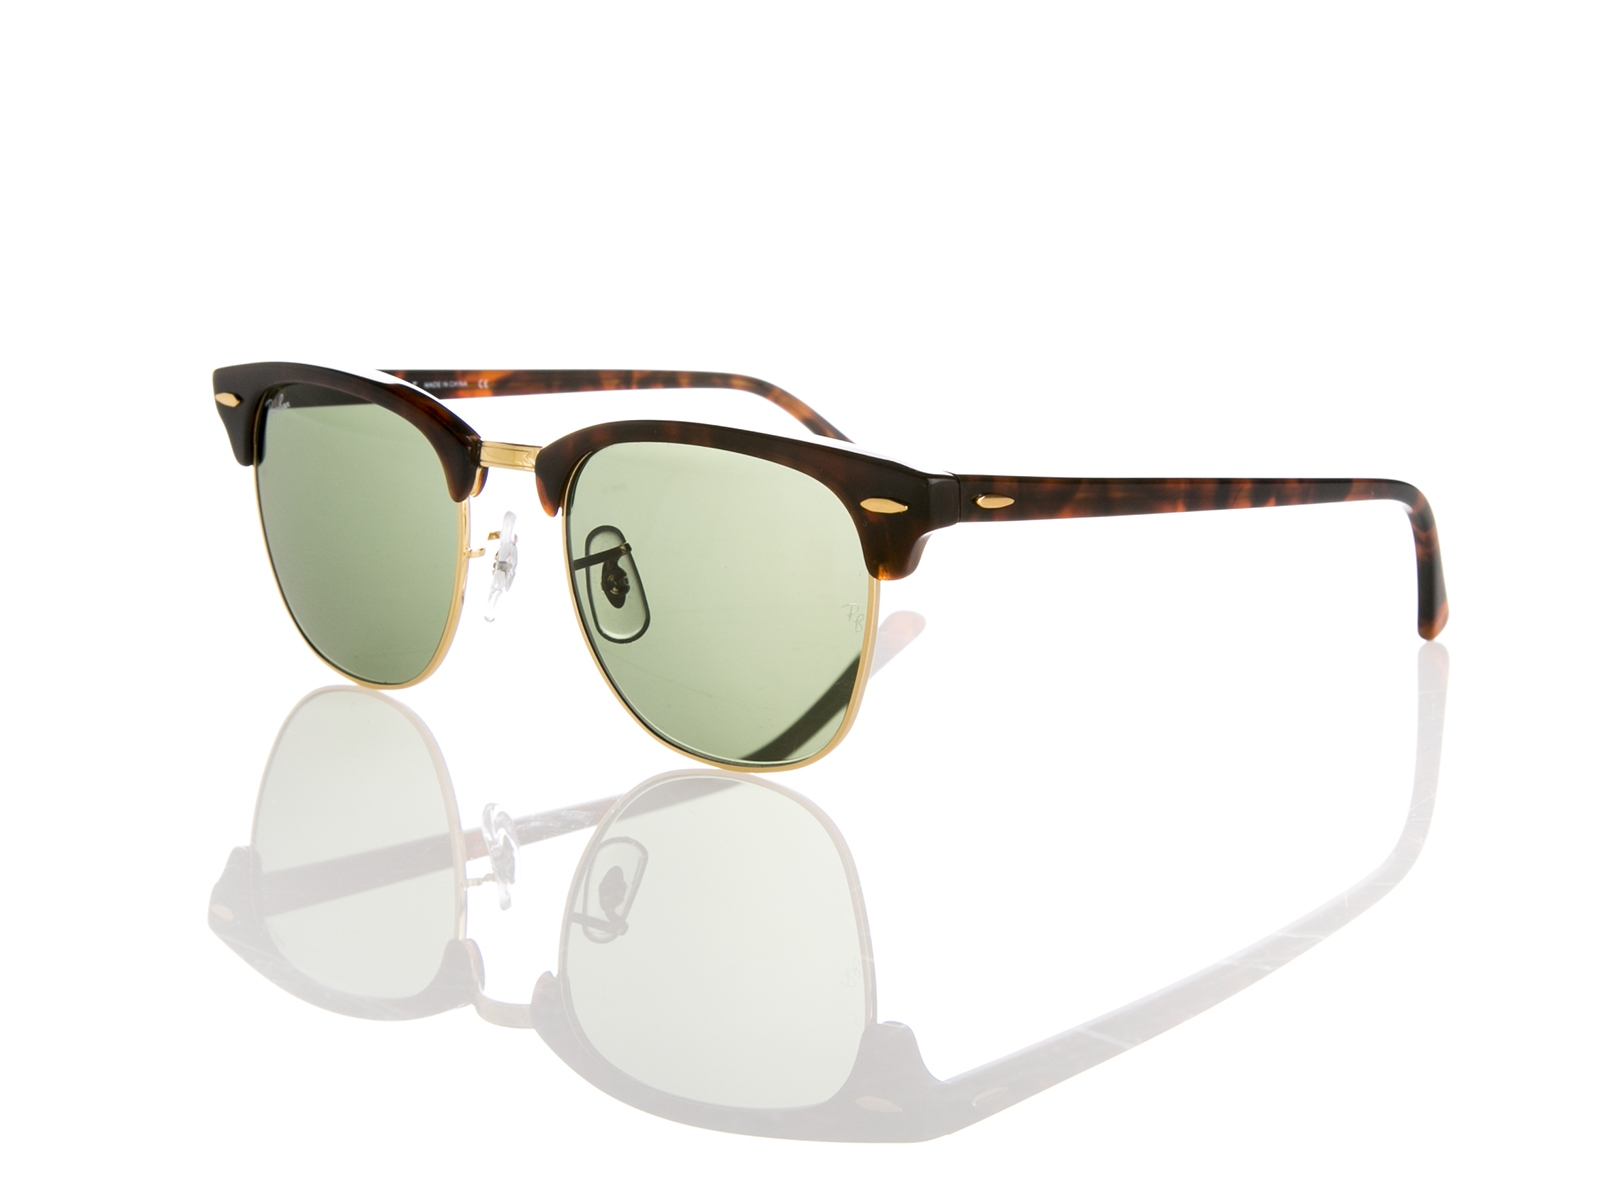 ... ray ban copy,RayBan Louisville Kentucky - New Menu0027s, Womenu0027s  and Kidsu0027 Ray- ... cf3a2fcf74c6